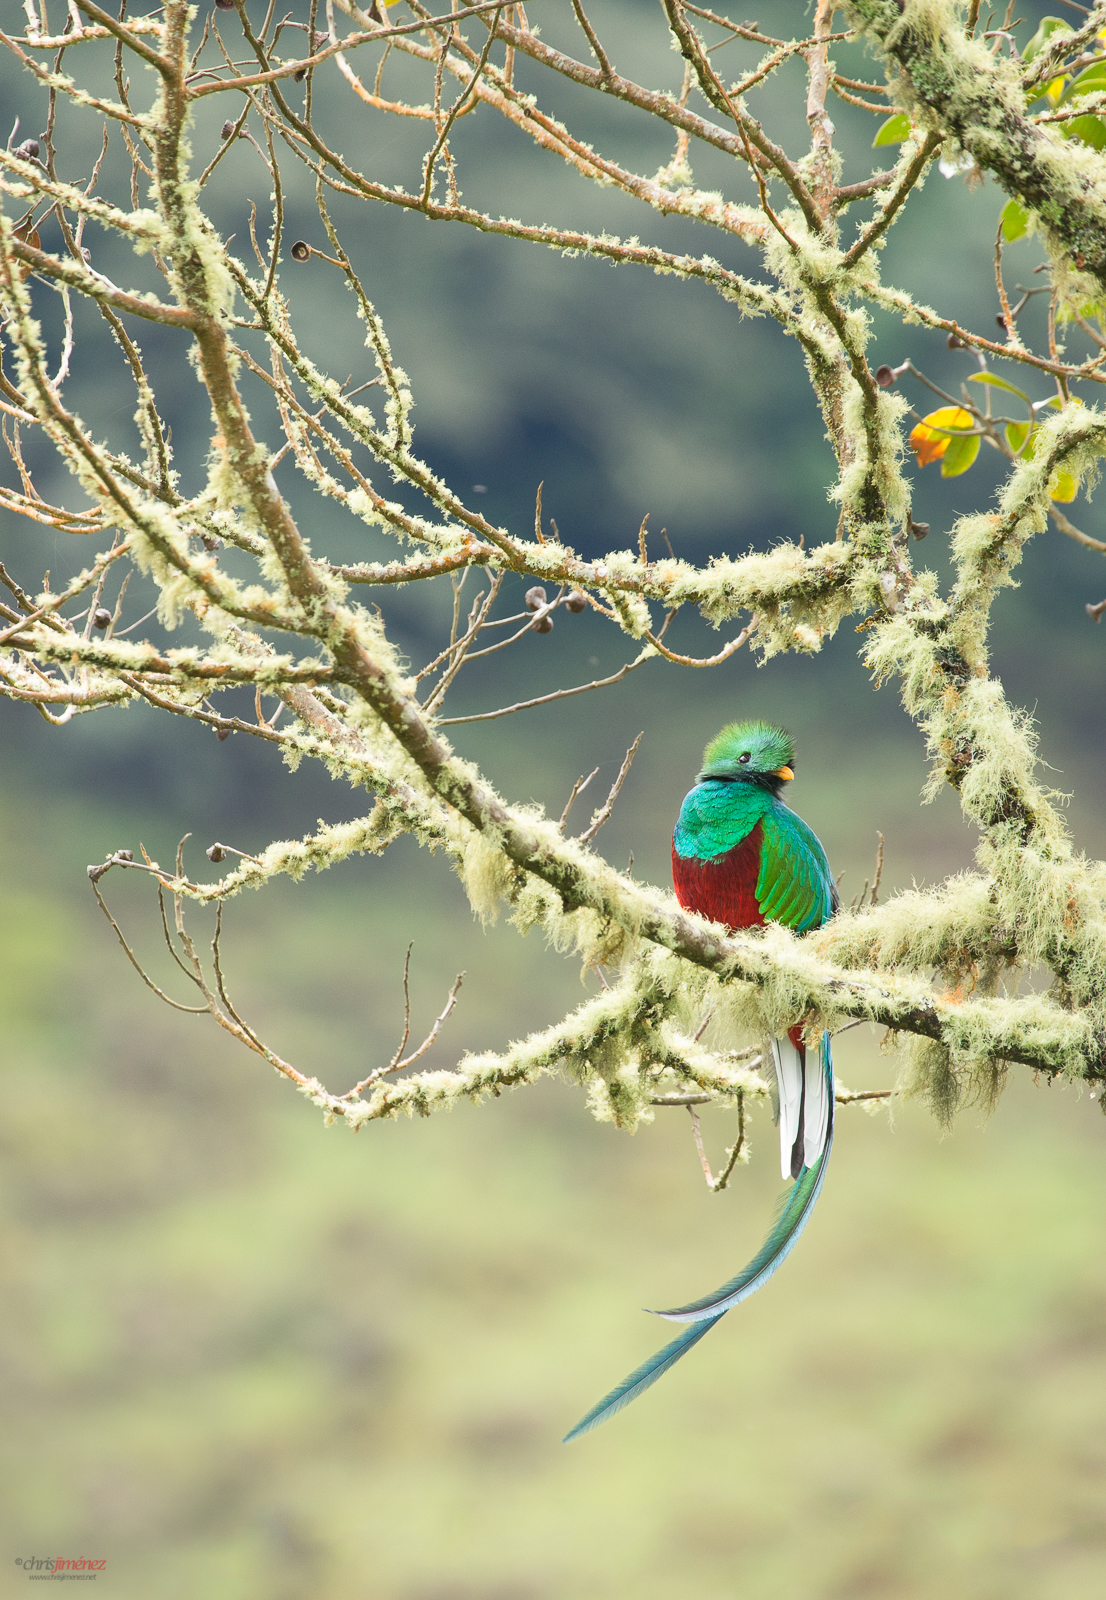 Resplendent Quetzal perched on a mossy branch at the highlands of Costa Rica